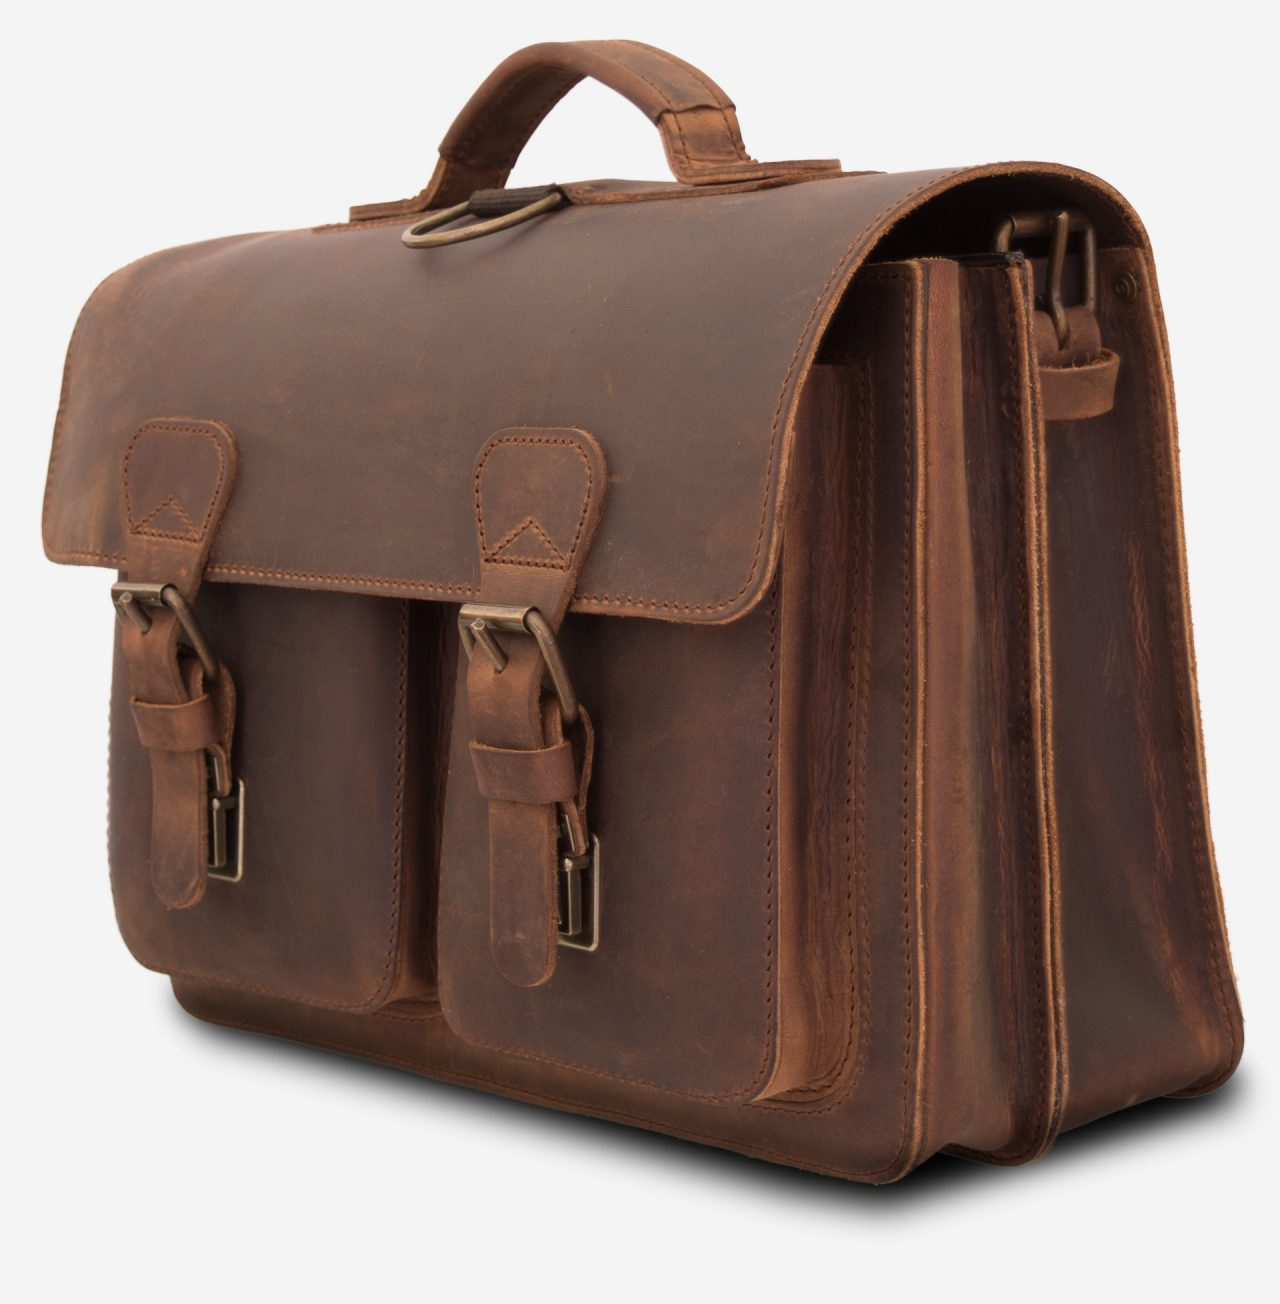 Side view of brown leather backpack satchel with 2 compartments and 2 front pockets.